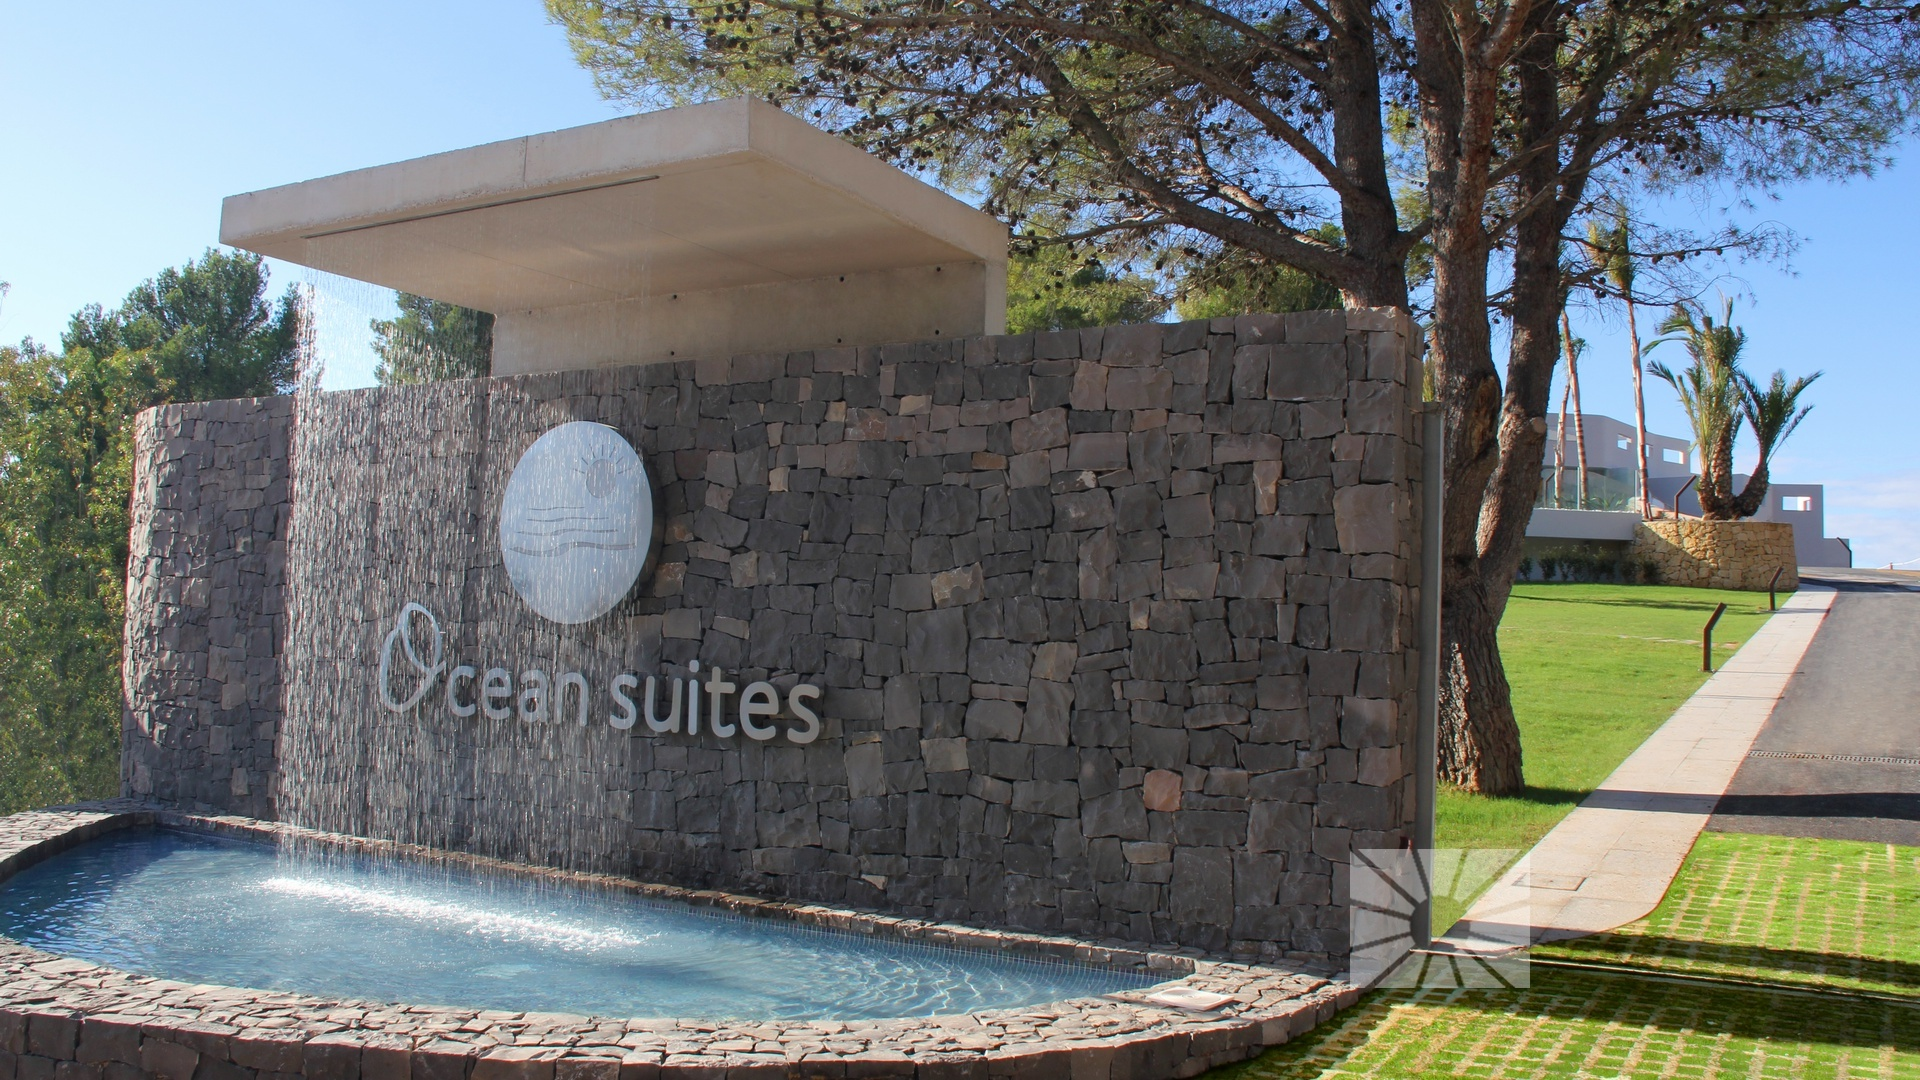 De marketing Altea Luxe Altea H1 Sierra Altea OCEAN SUITES ALTEA